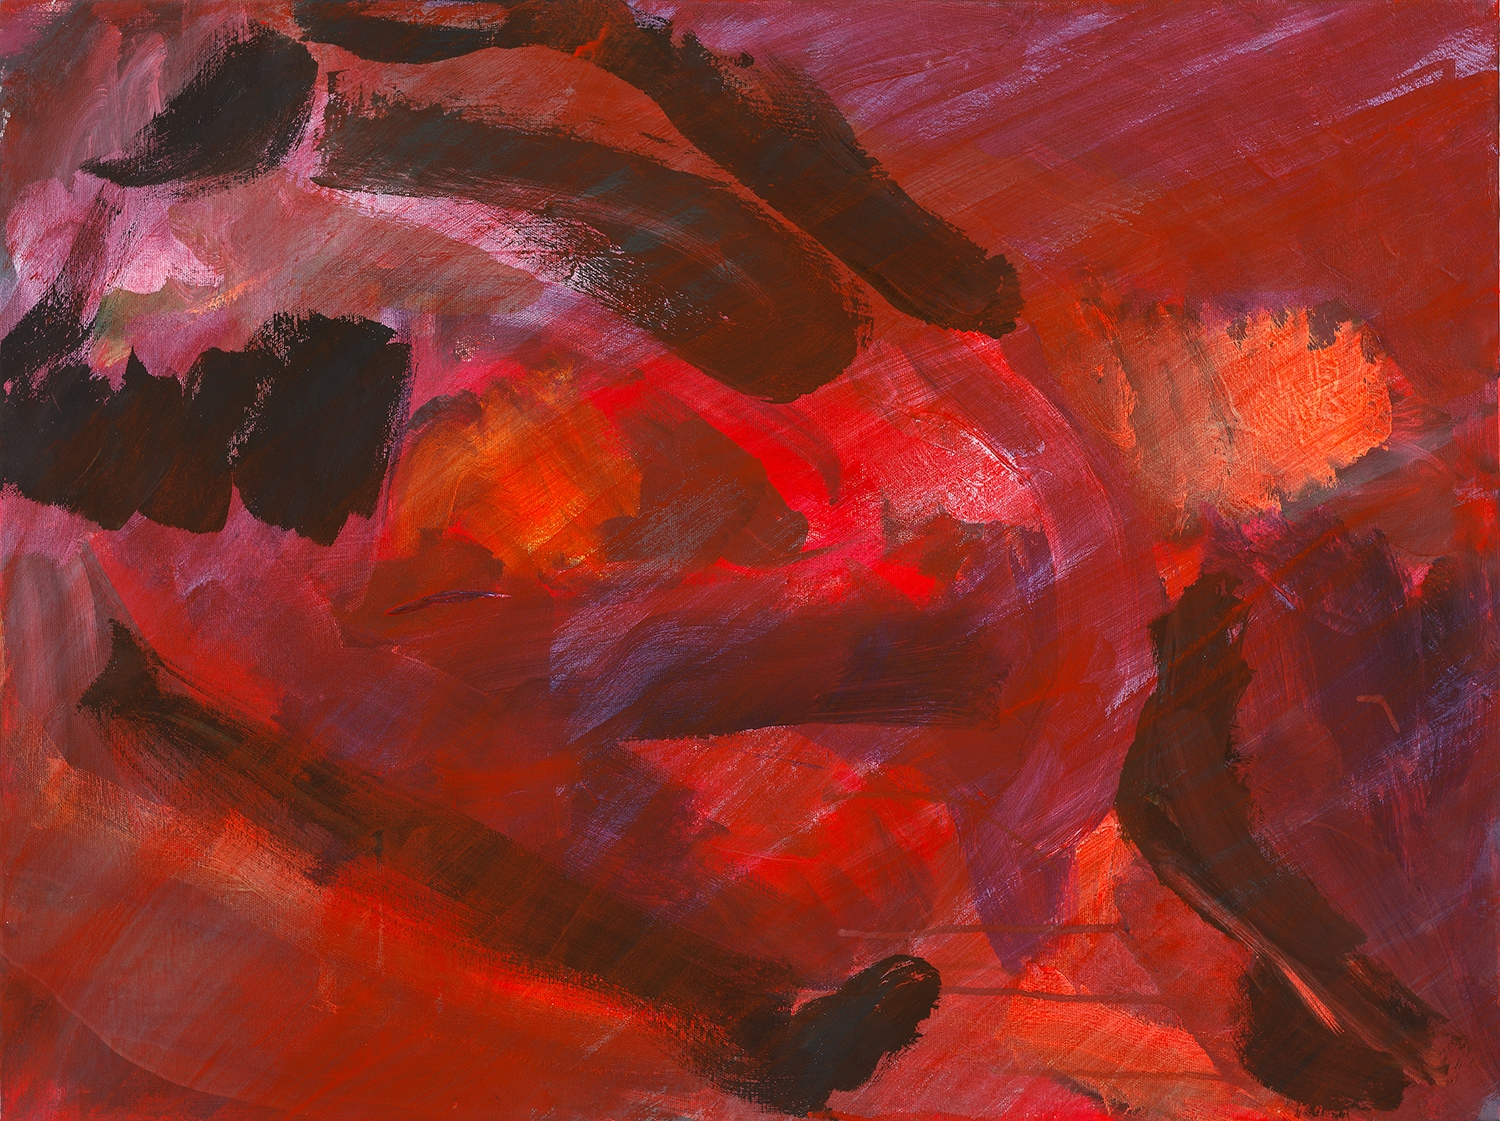 red, 2008